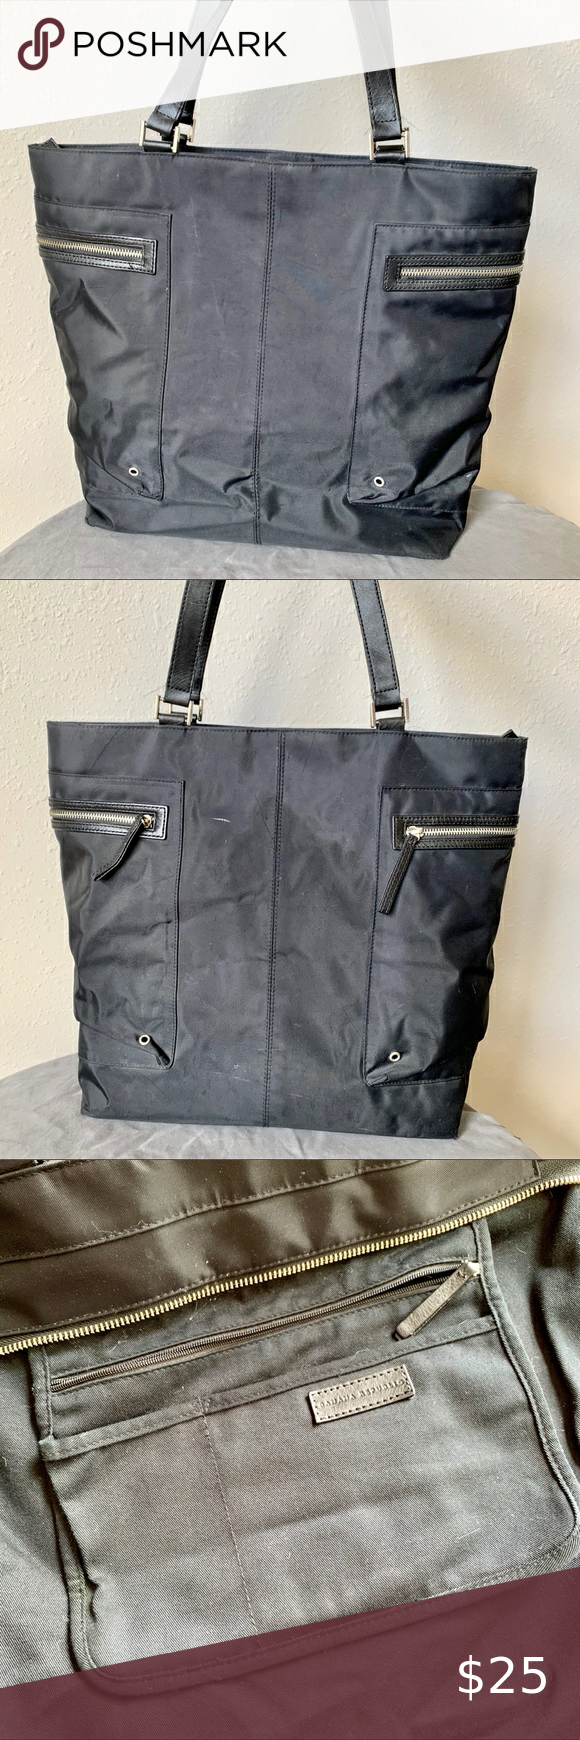 Banana Republic Large Black Tote Bag